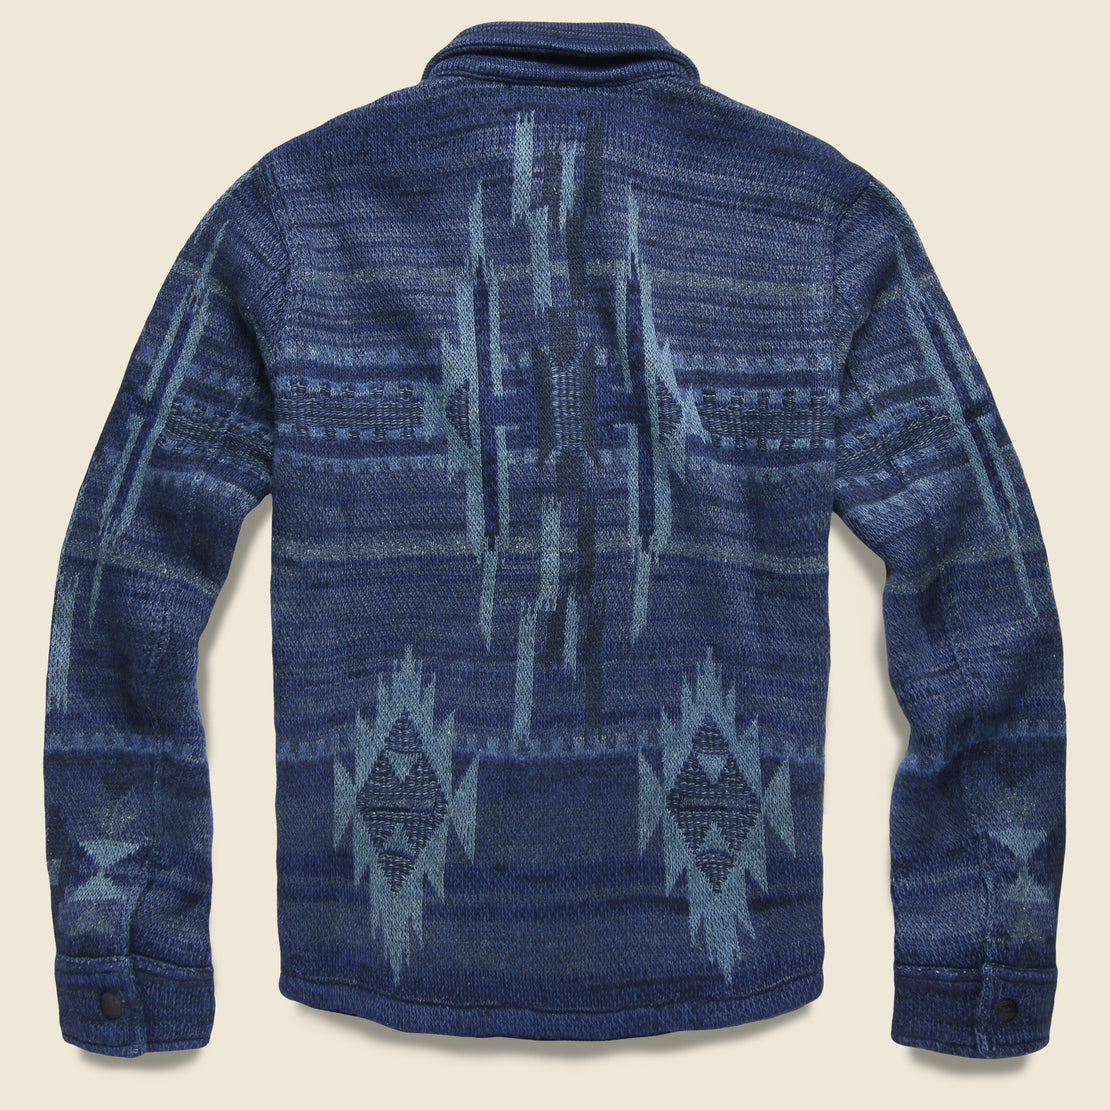 Chimayo Birdseye Jacquard Workshirt Sweater - Indigo